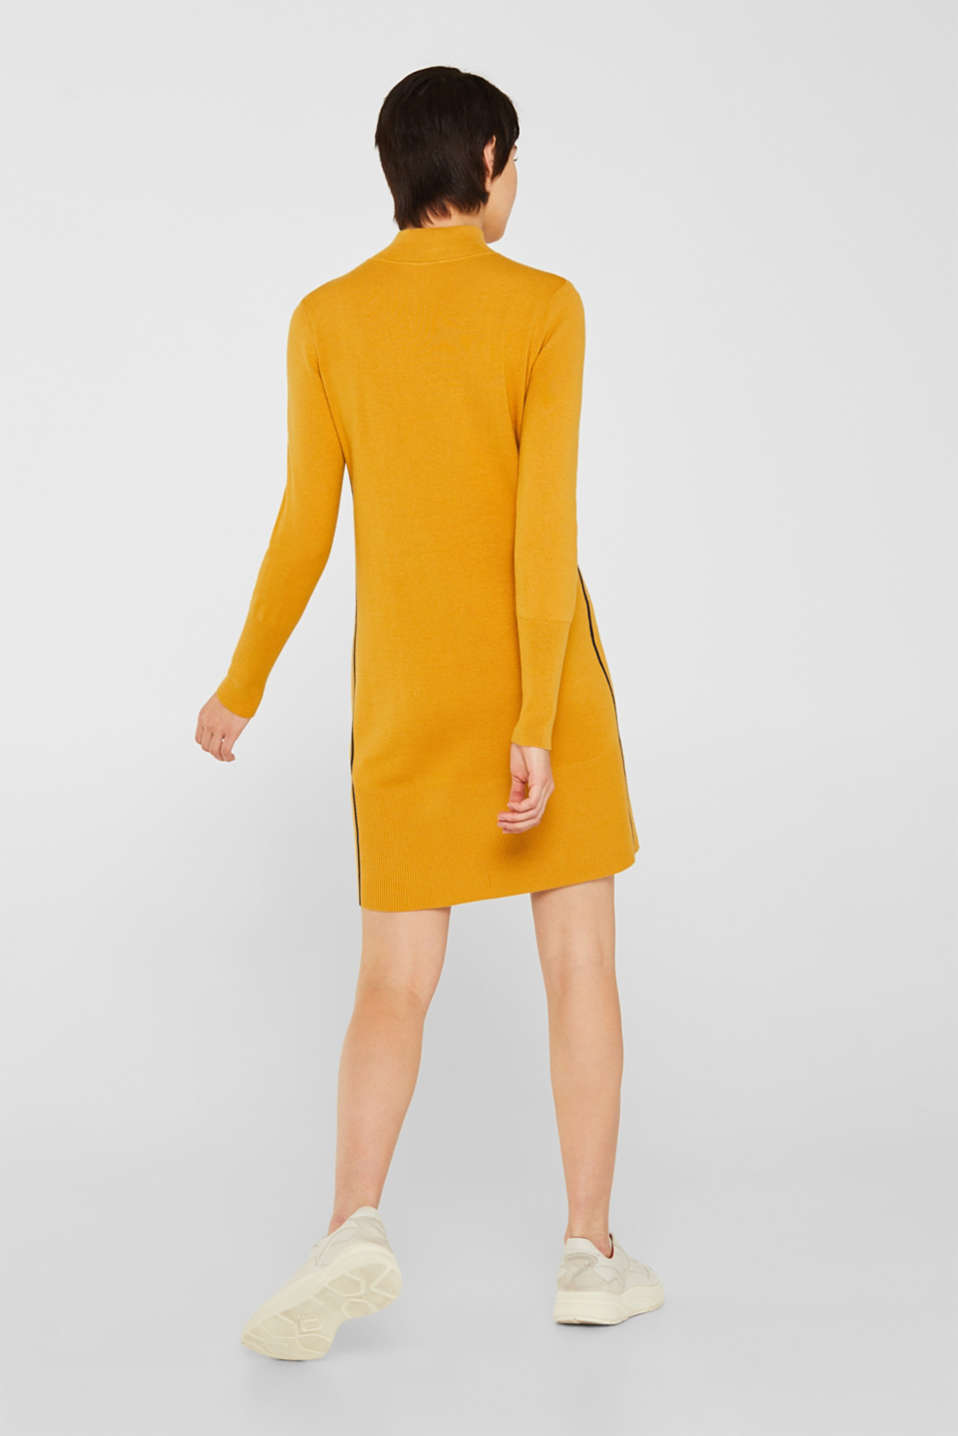 Knit dress with a zip-up band collar, HONEY YELLOW, detail image number 2